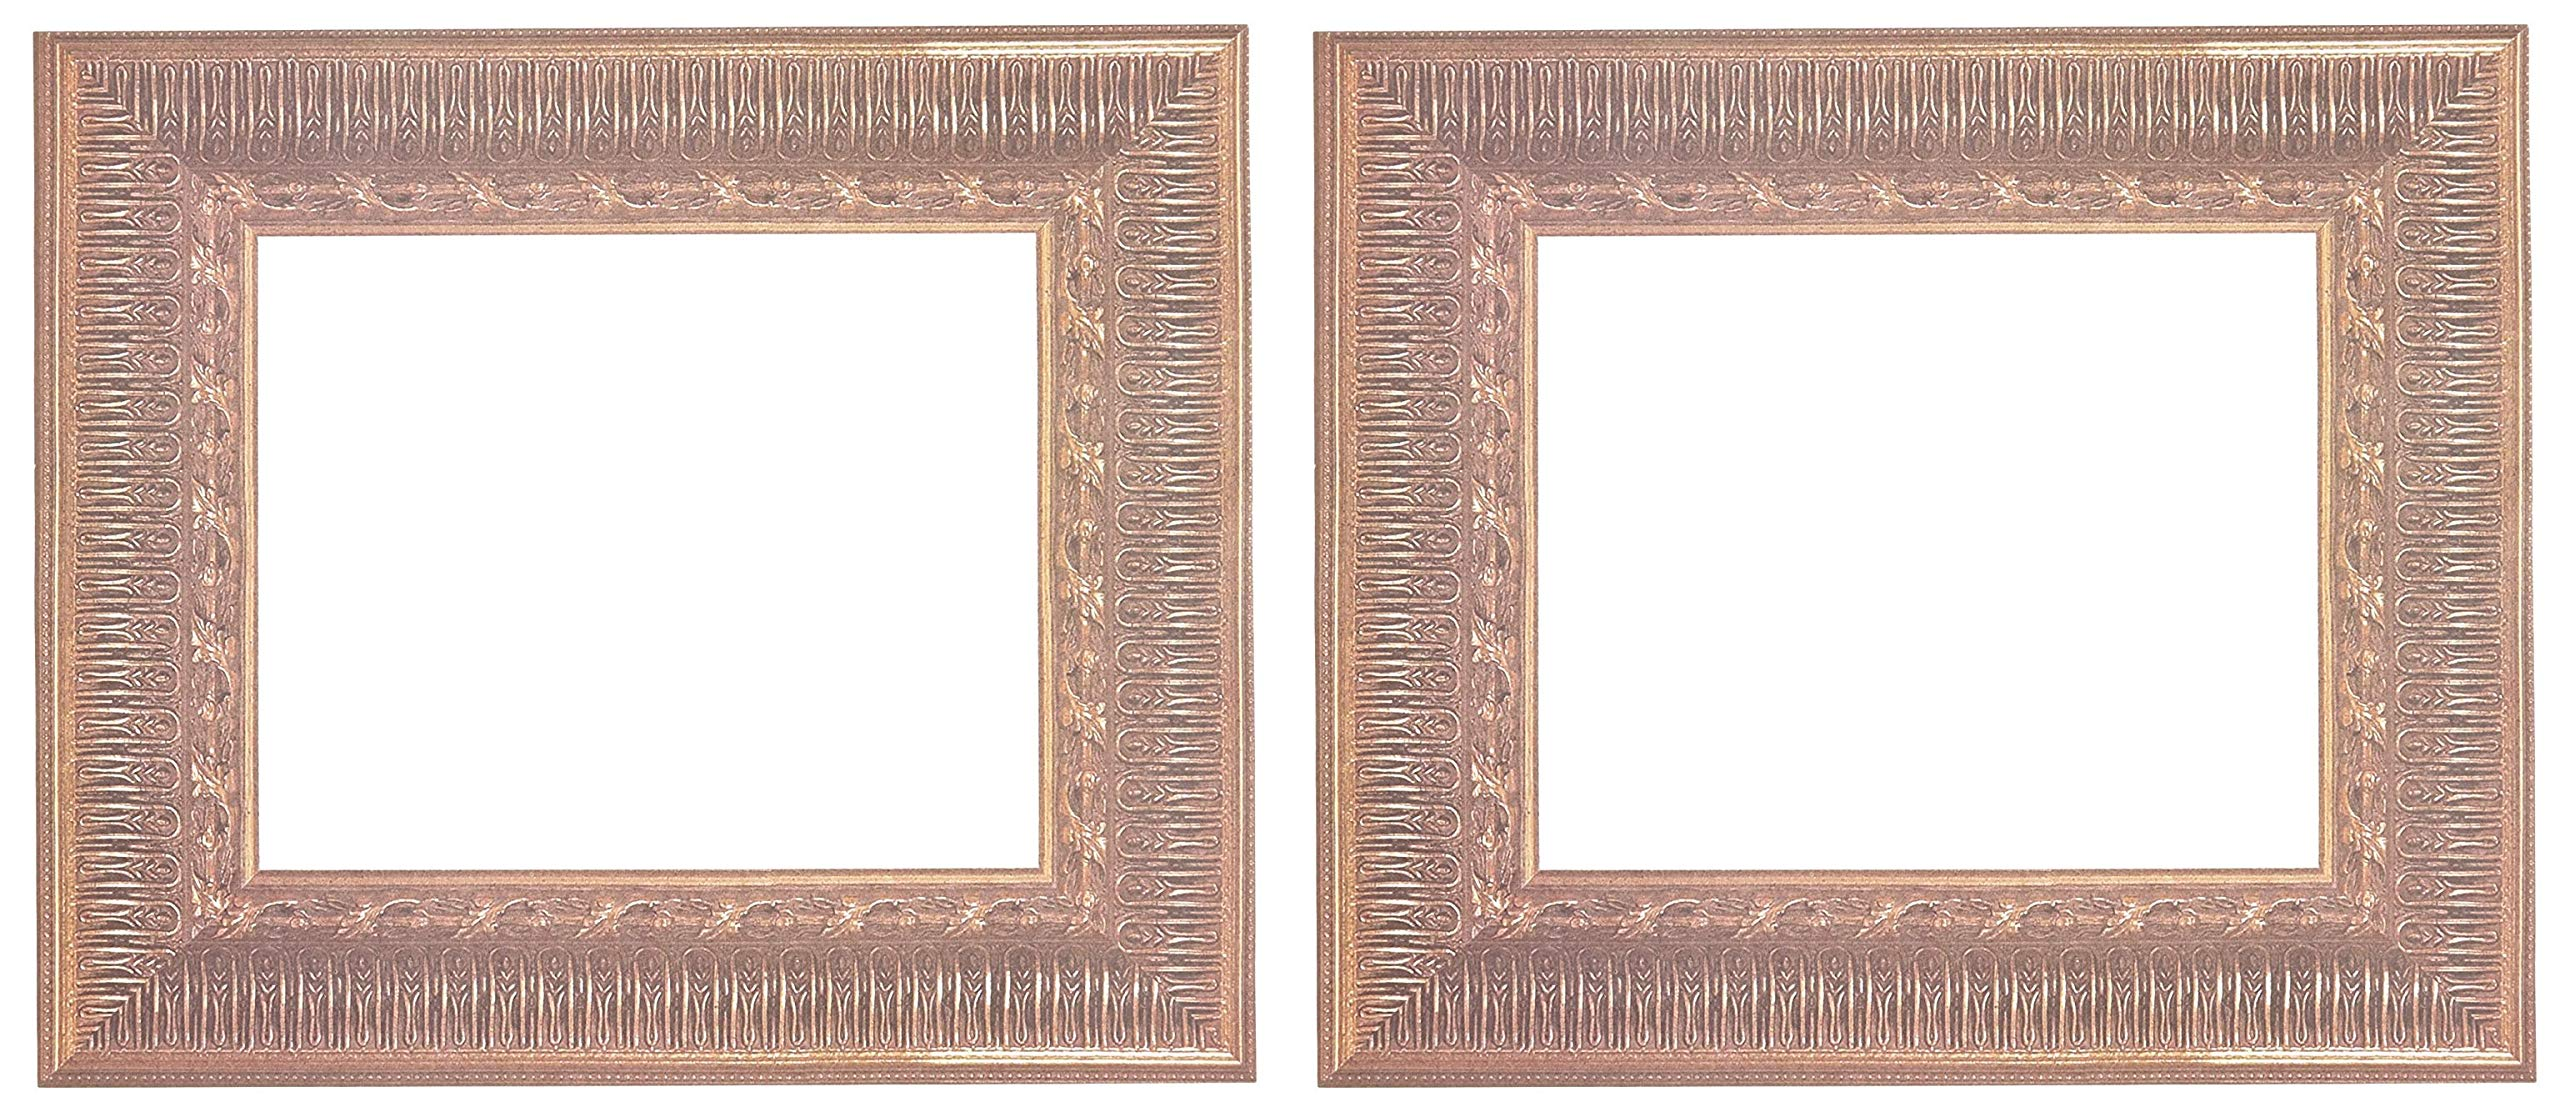 Sax Picture Frame Paper Antique Style - 13 1/2 x 15 1/2 inches - Pack of 50 (Вundlе оf Тwо) by Sax